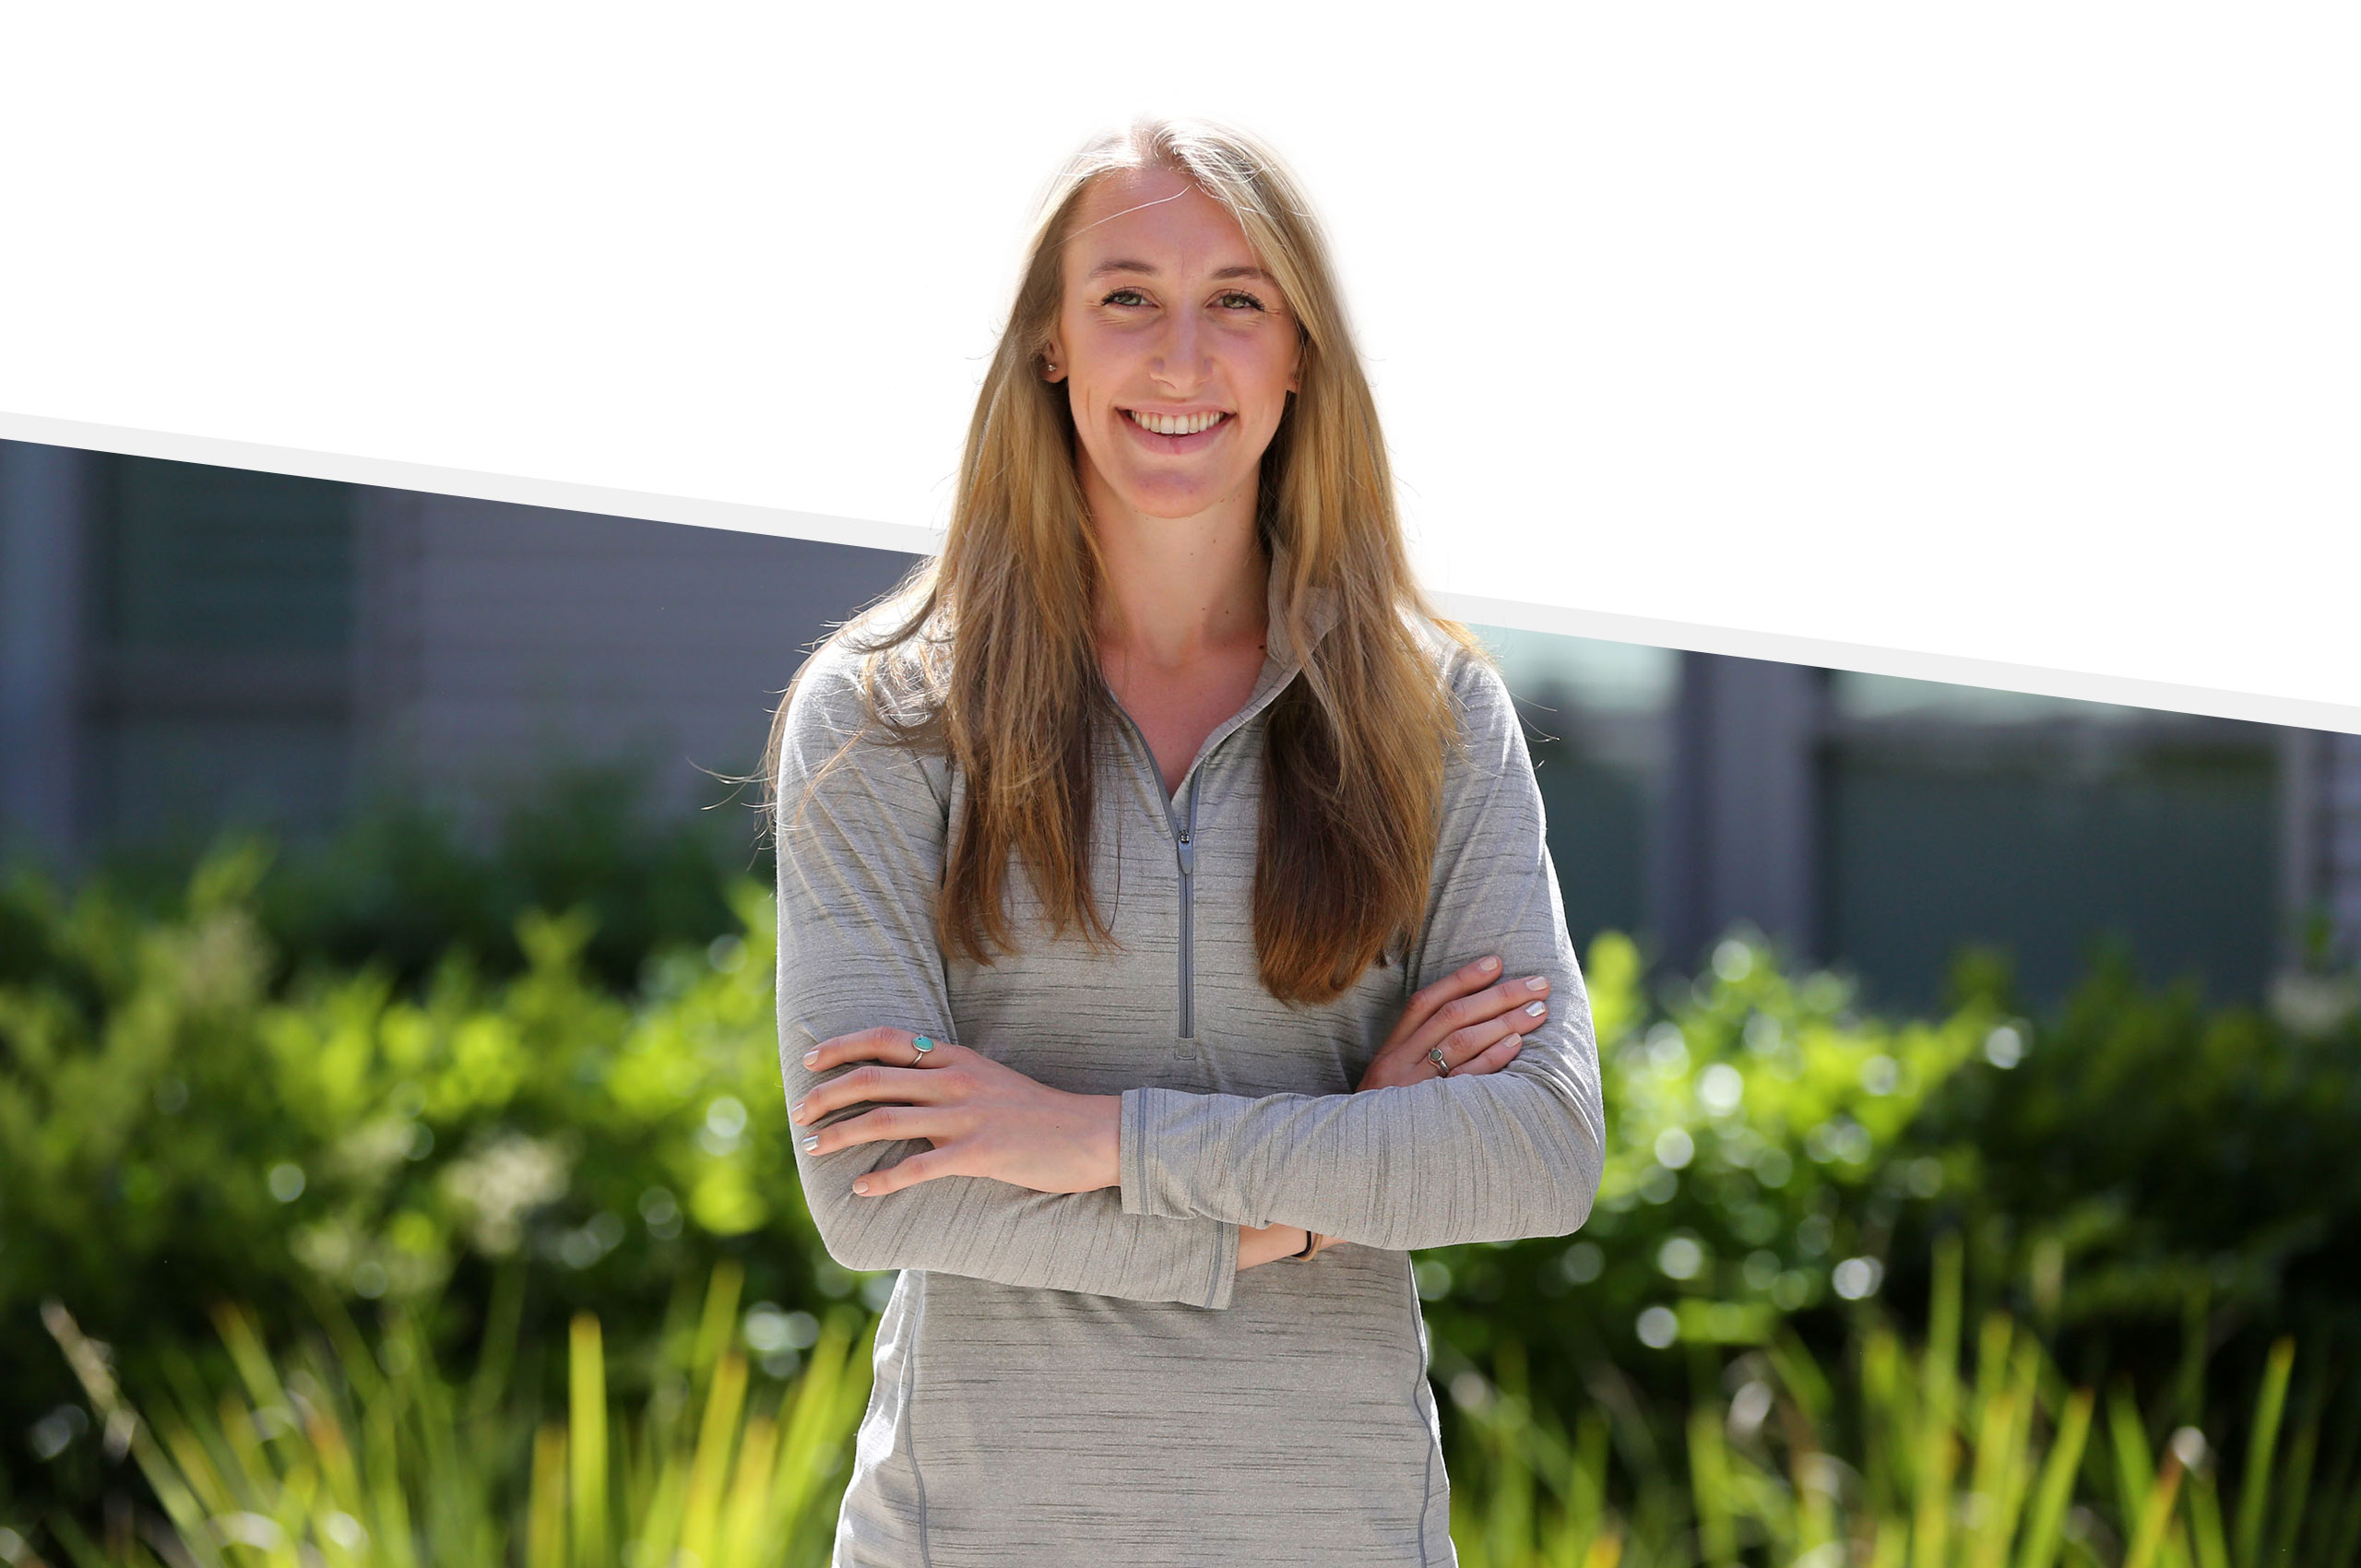 Cal State LA student and athlete and alumna, Iona Lofrano